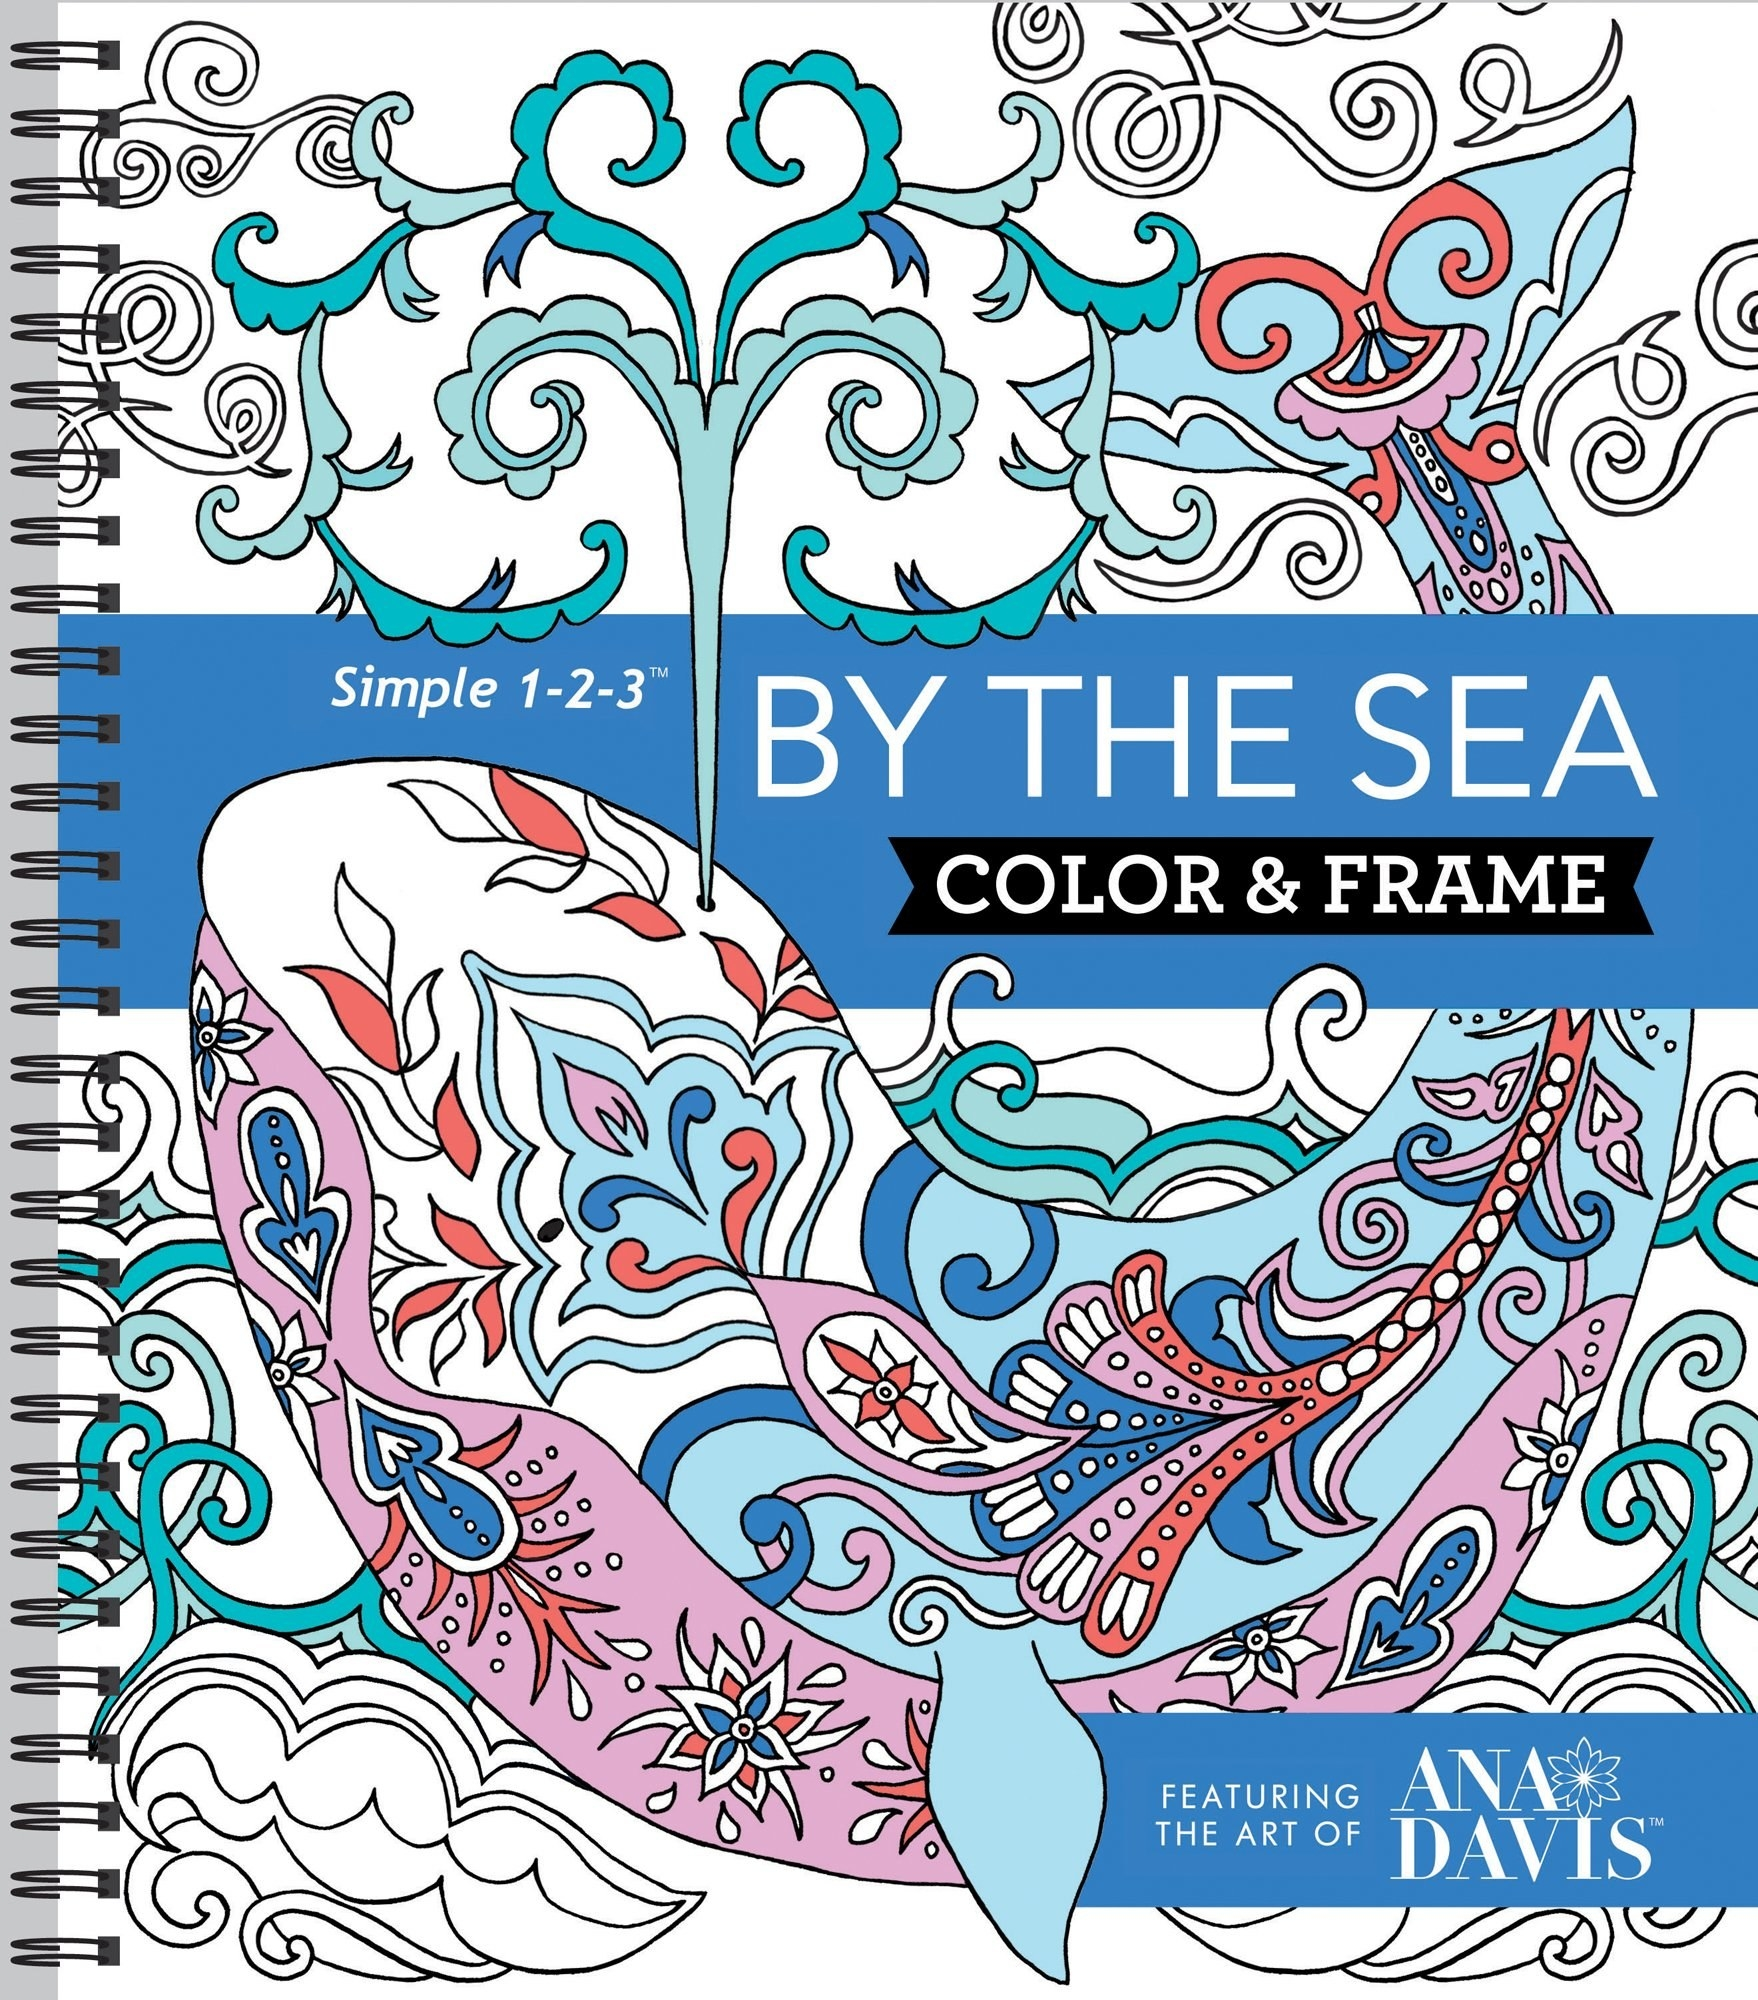 The cover of a marine-themed colouring book